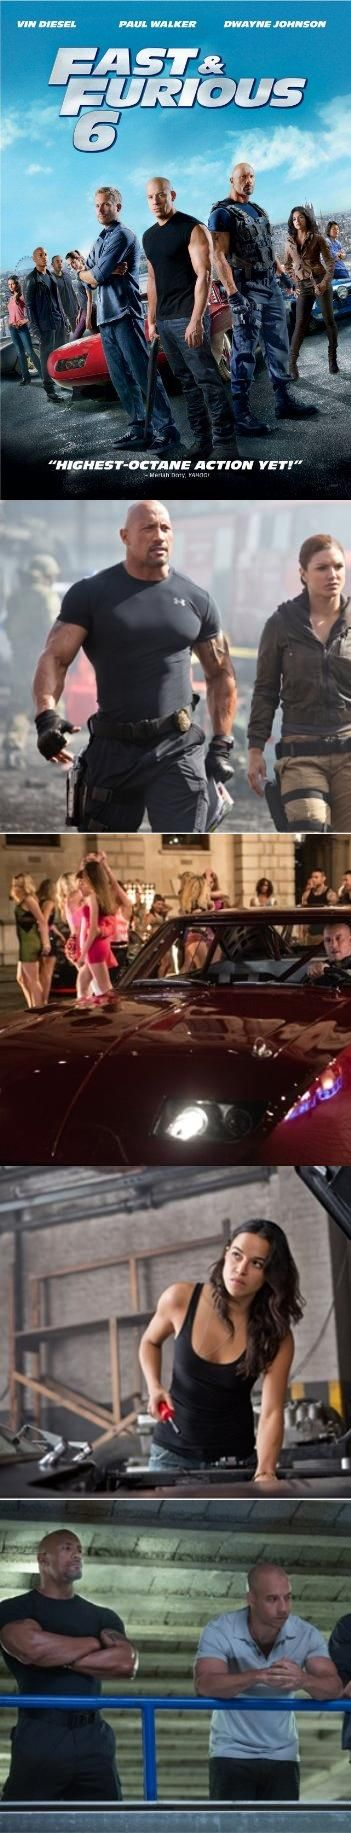 Fast & Furious 6, Vin Diesel, Paul Walker, Dwayne Johnson and Michelle Rodriguez lead a cast of returning all-stars as the global blockbuster franchise built on speed delivers the biggest adrenaline rush yet. Hobbs (Jo..., #DVD, #Movies